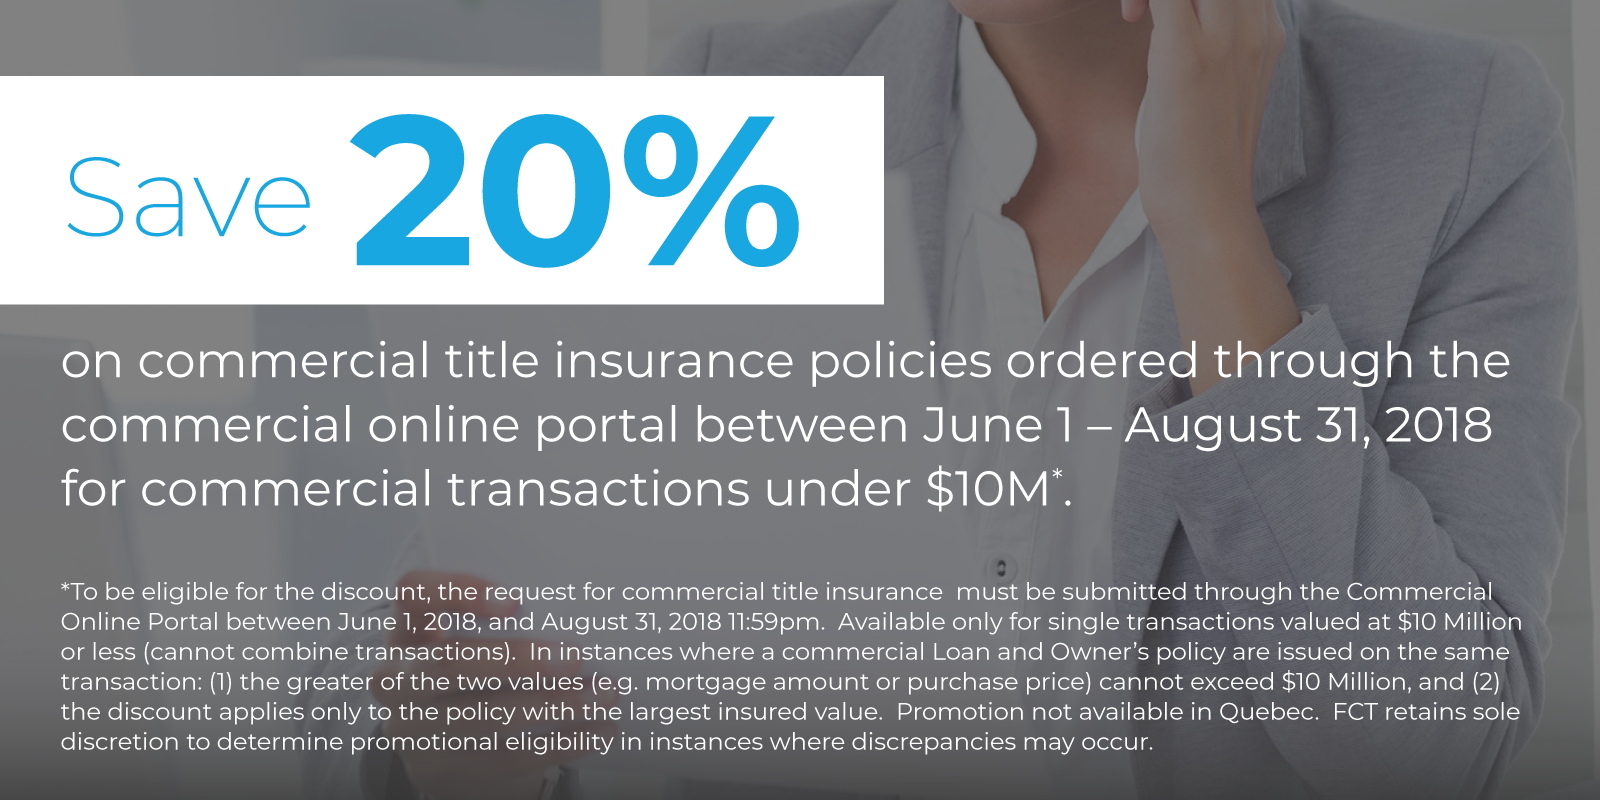 Save 20% Commercial Title Insurance